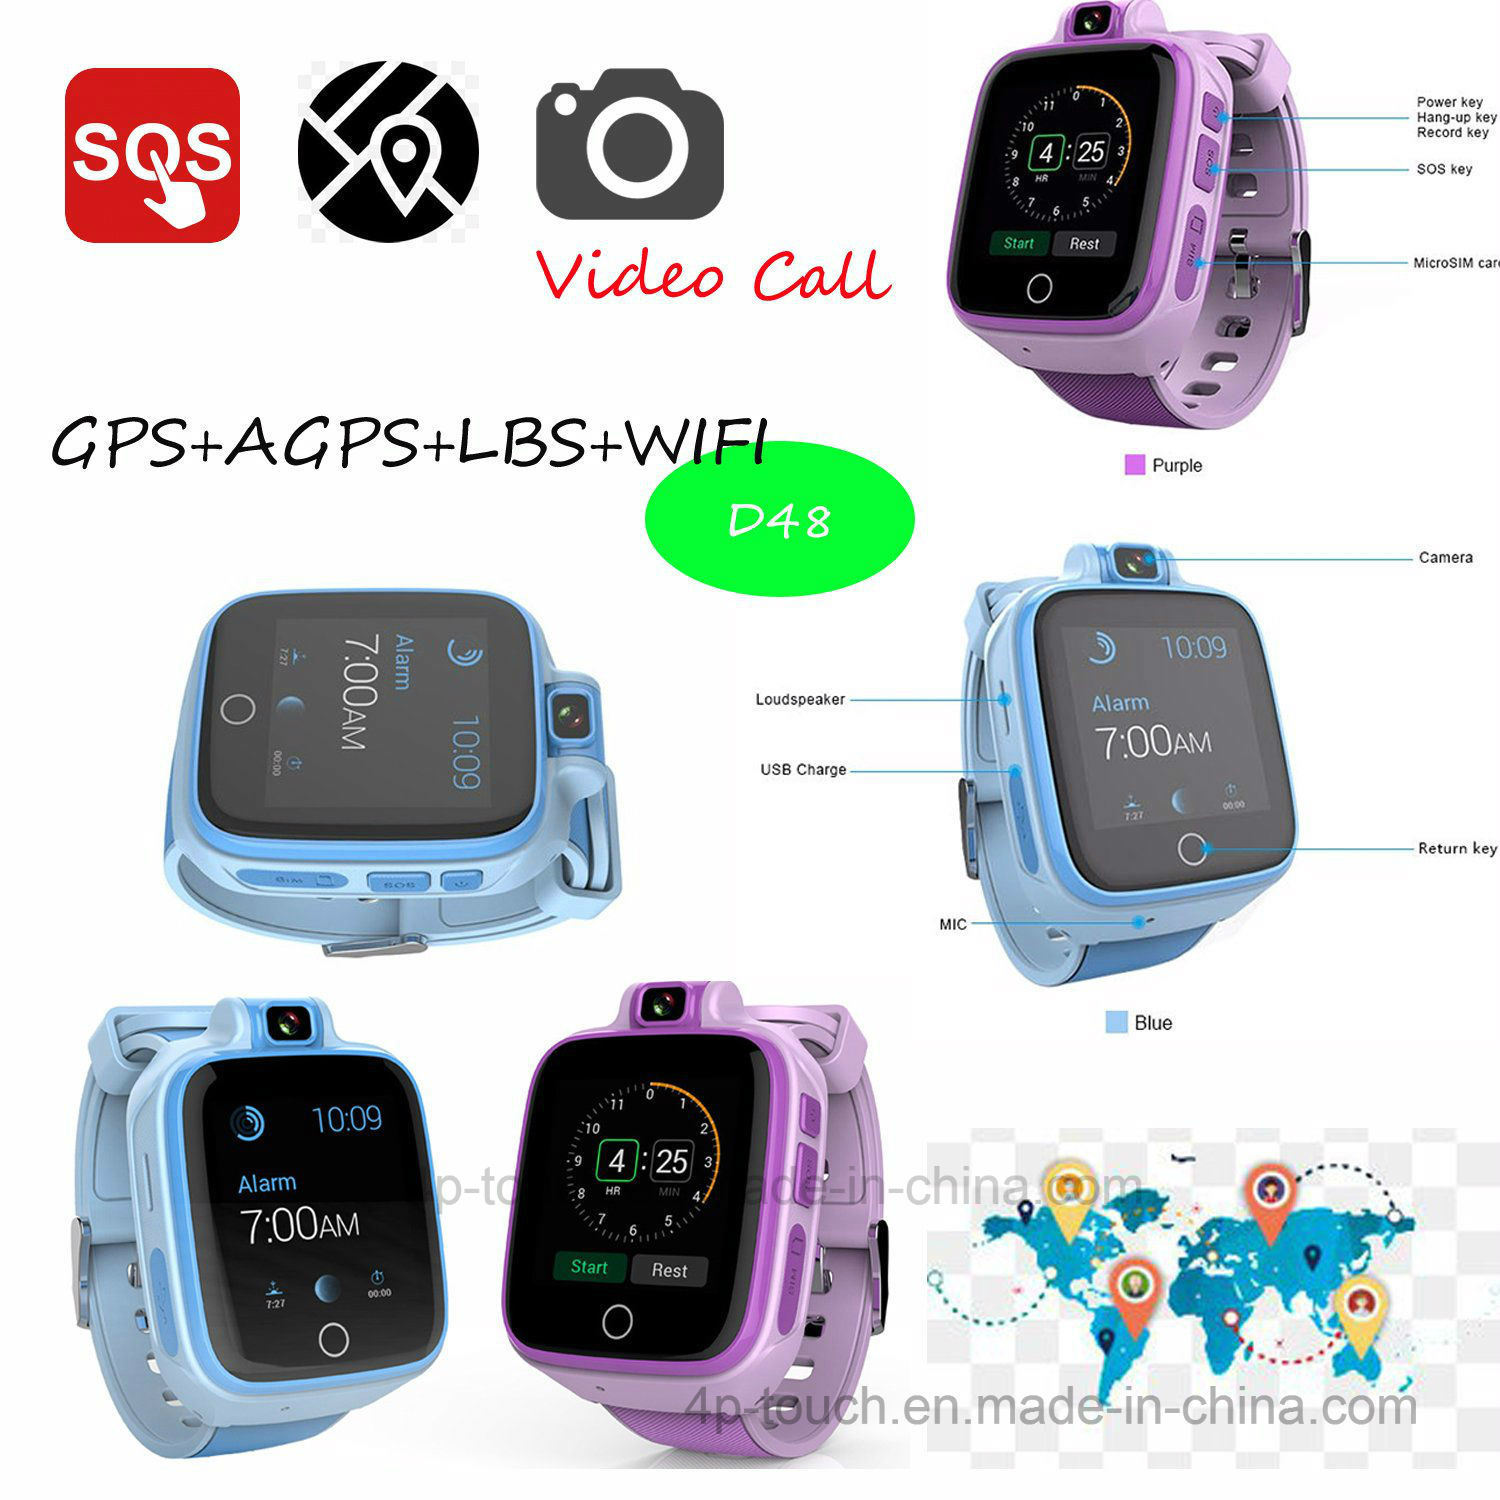 a60b20a5f531 China Newest 4G Lte Kids GPS Tracker Watch with Video Call D48 - China GPS  Tracker